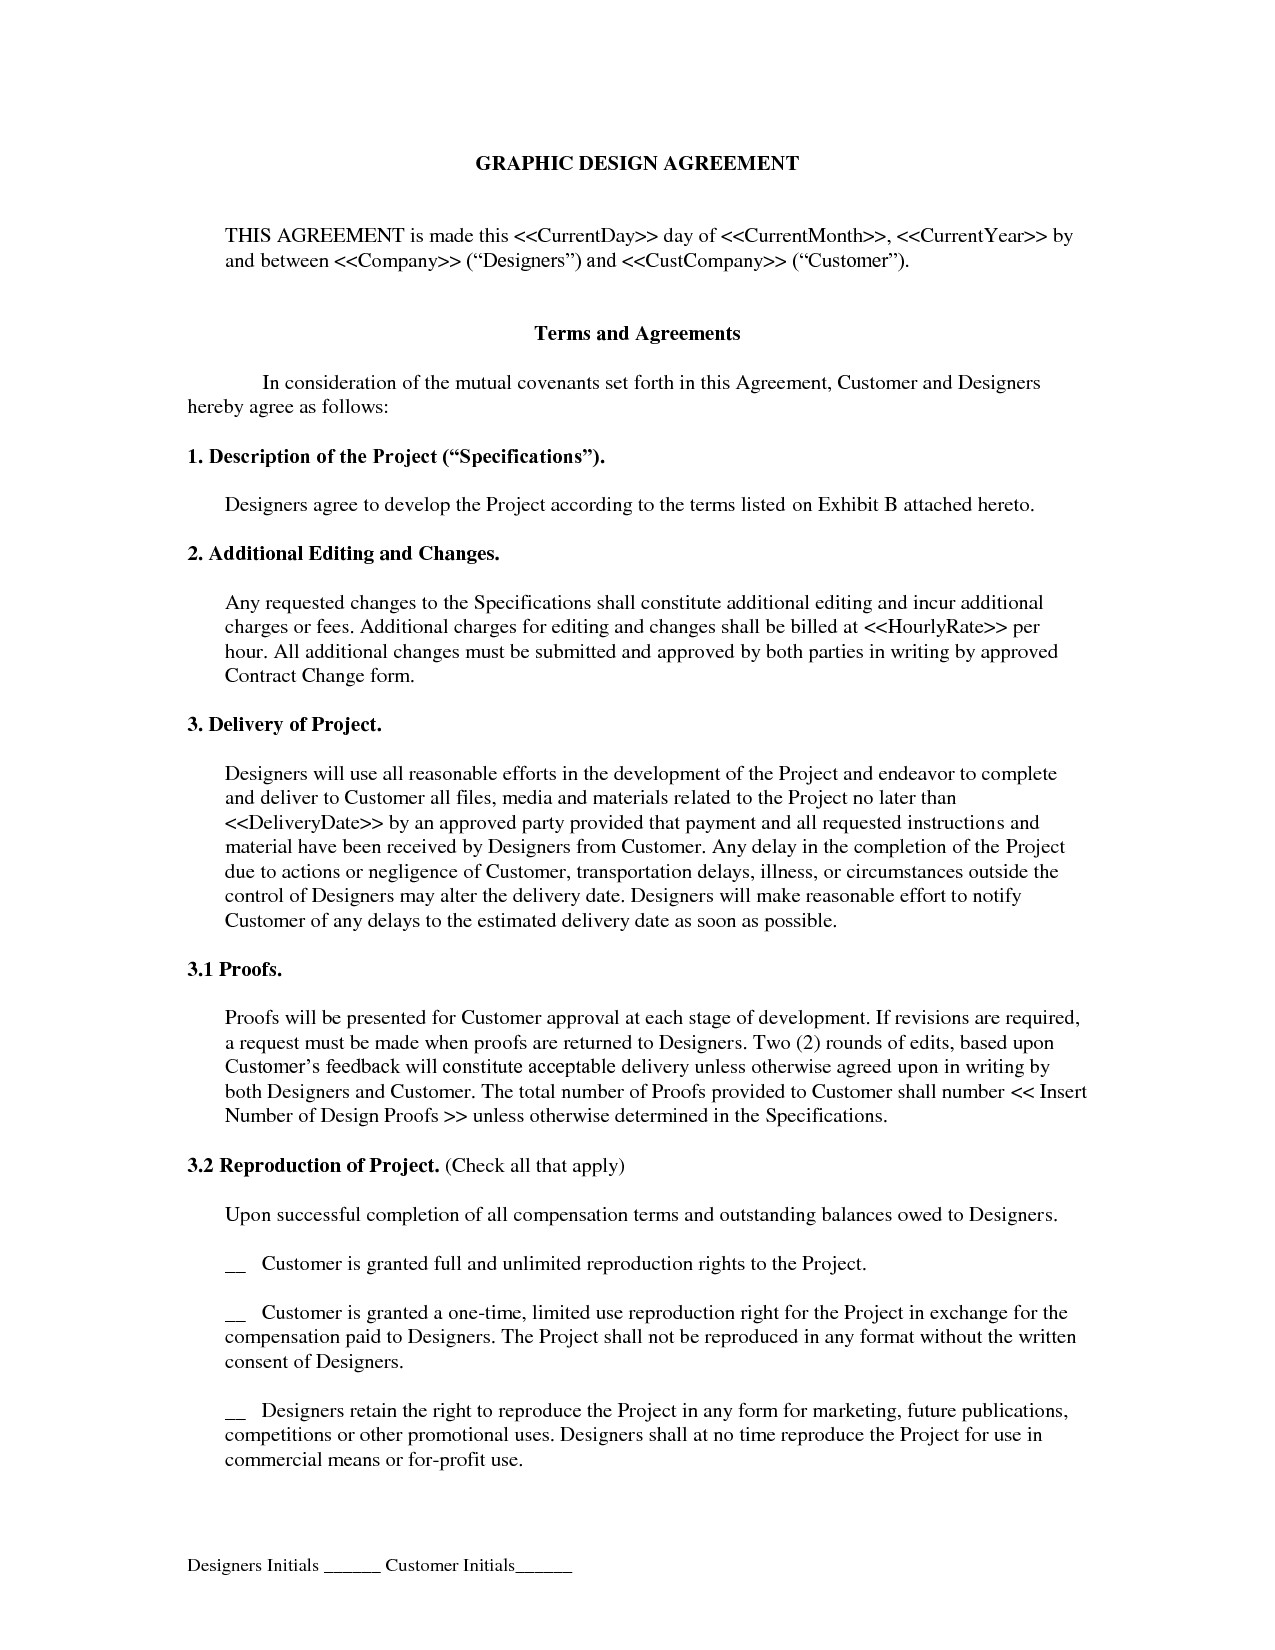 Graphic Design Contract Template Graphic Design Freelance Contract